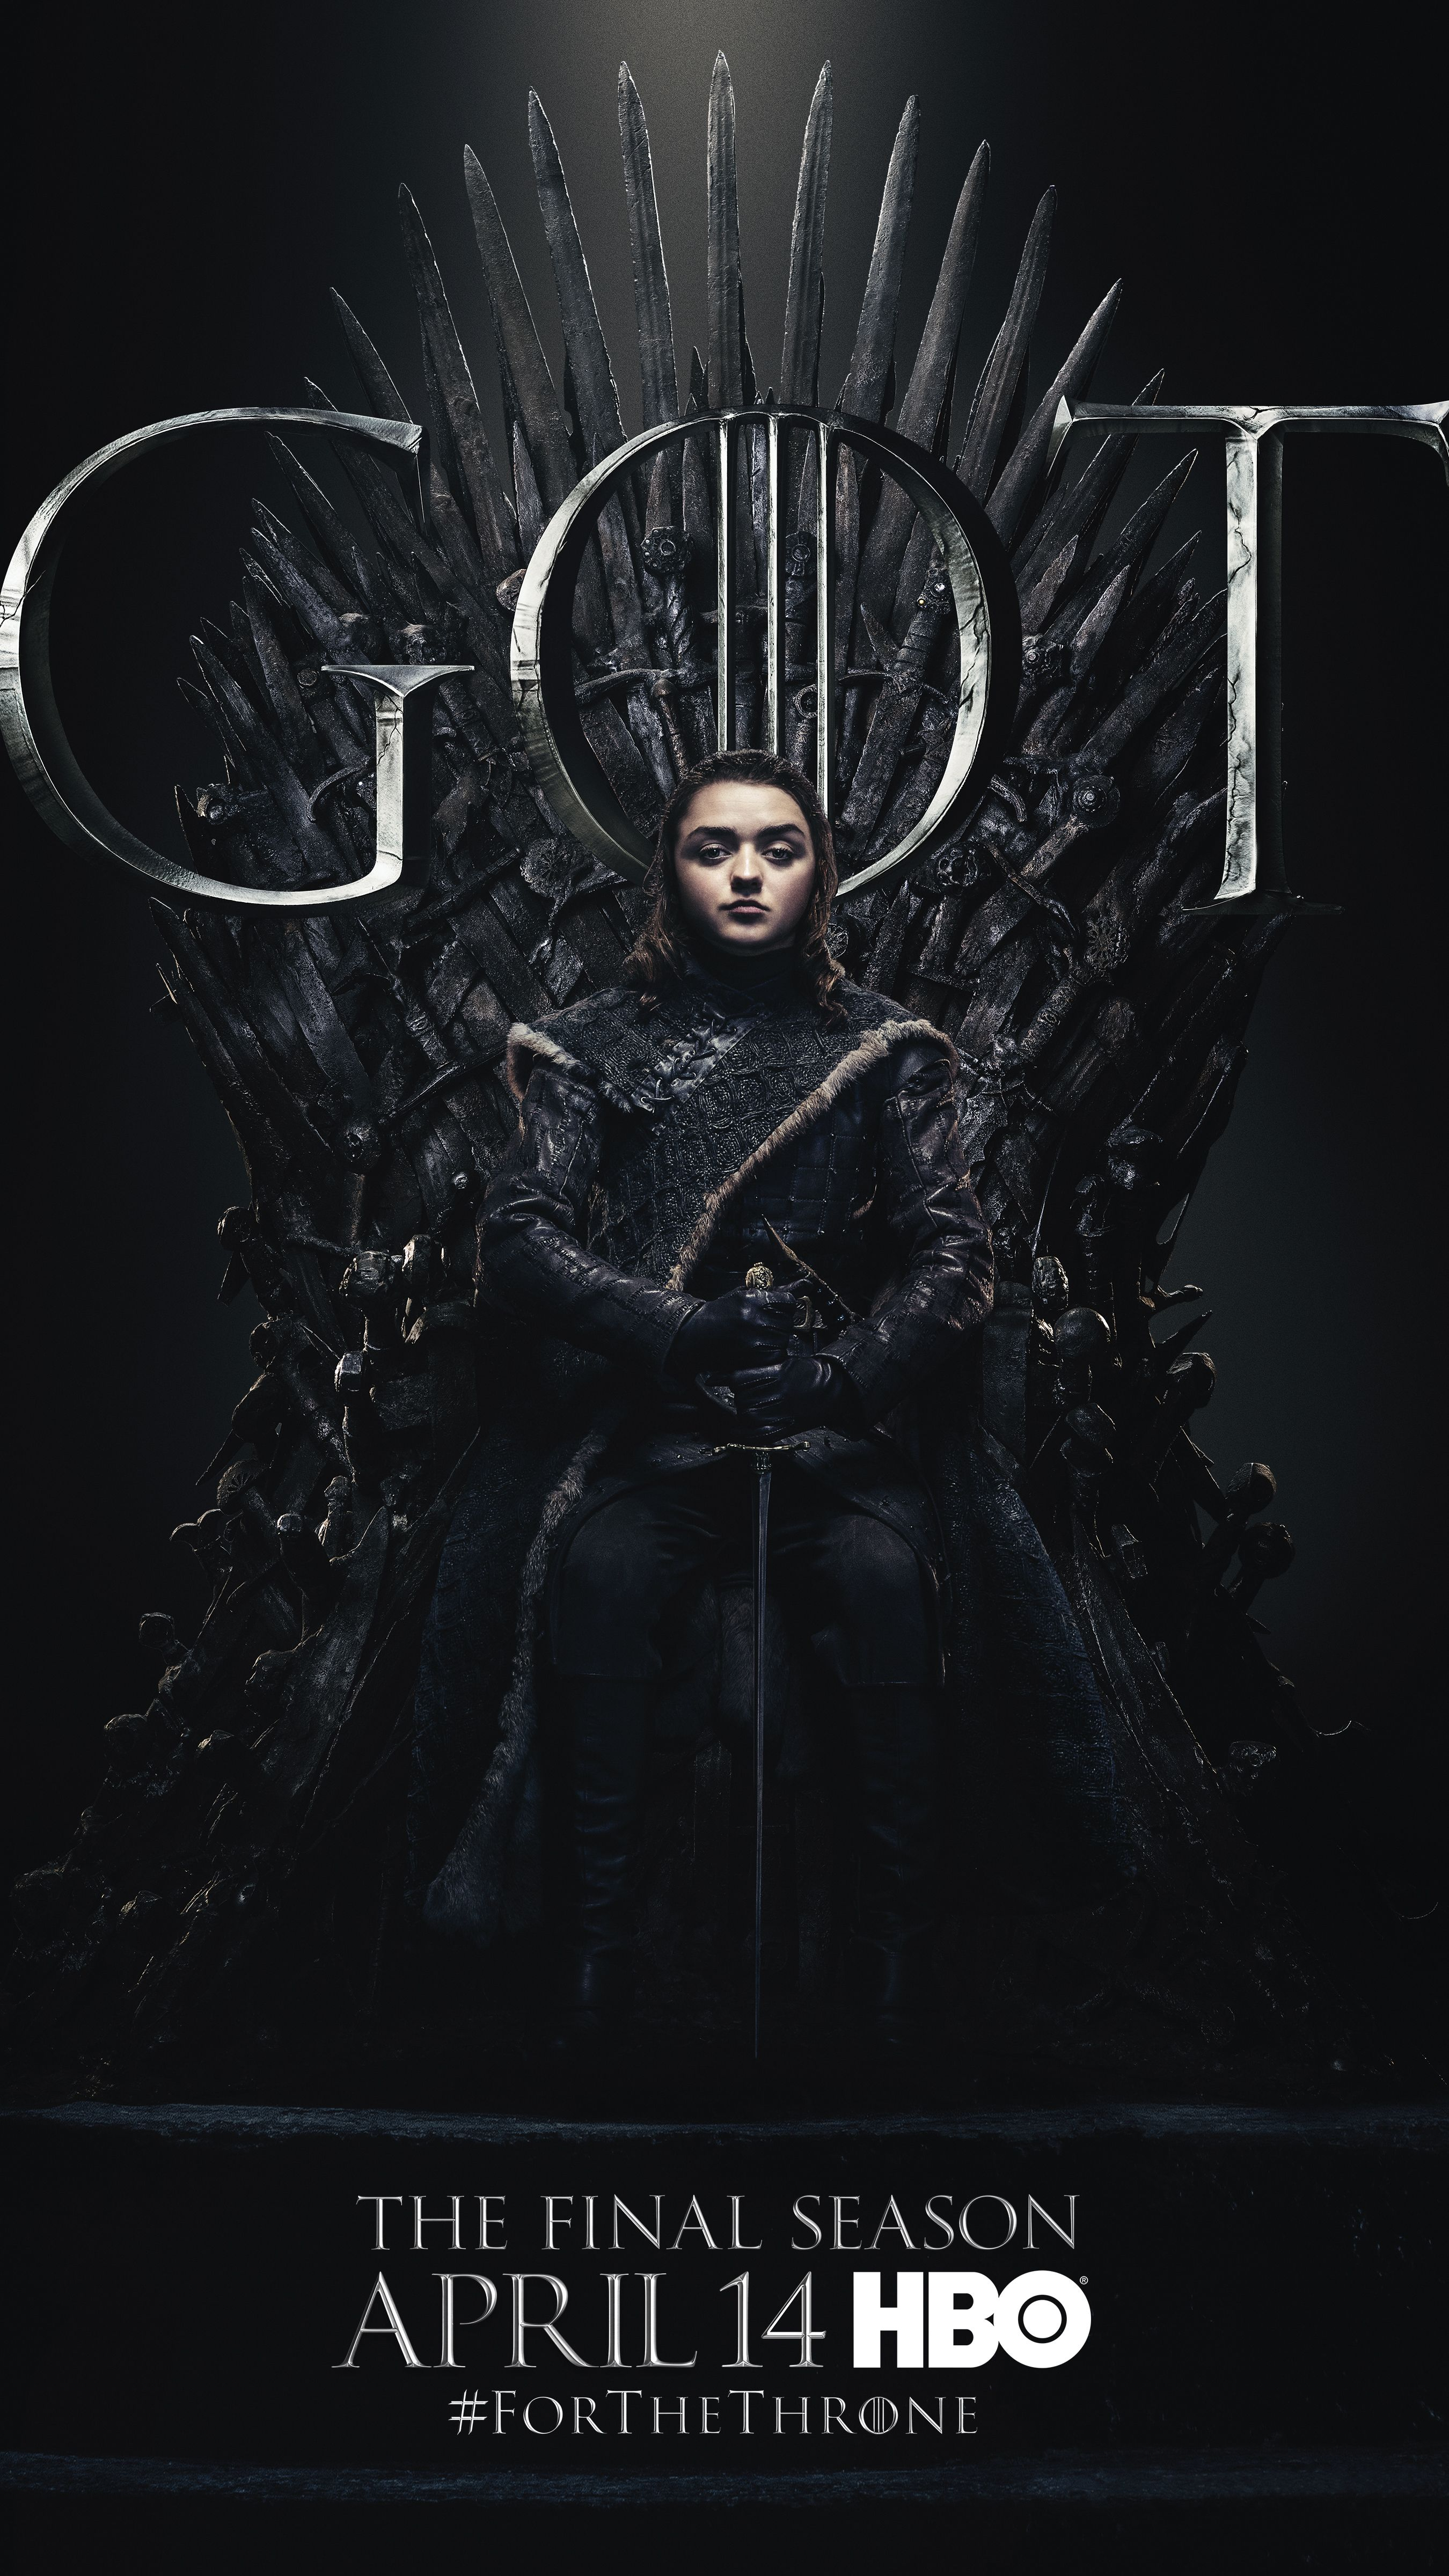 Game Of Thrones Vostfr Saison 8 Streaming : thrones, vostfr, saison, streaming, Games, Thrones, Saison, Episode, Streaming, Klewer